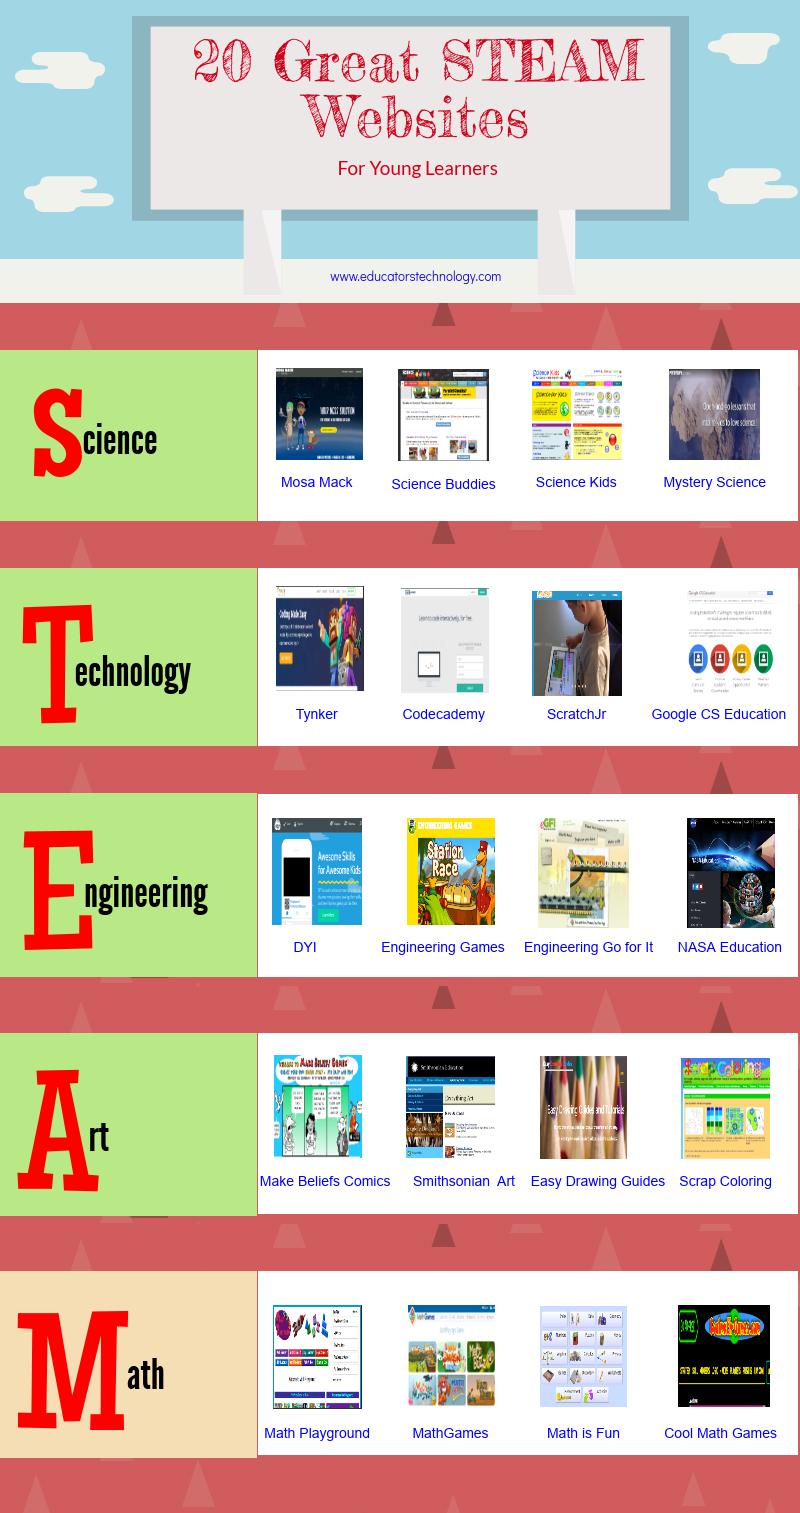 Some of The Best STEAM Websites for Teachers and Students